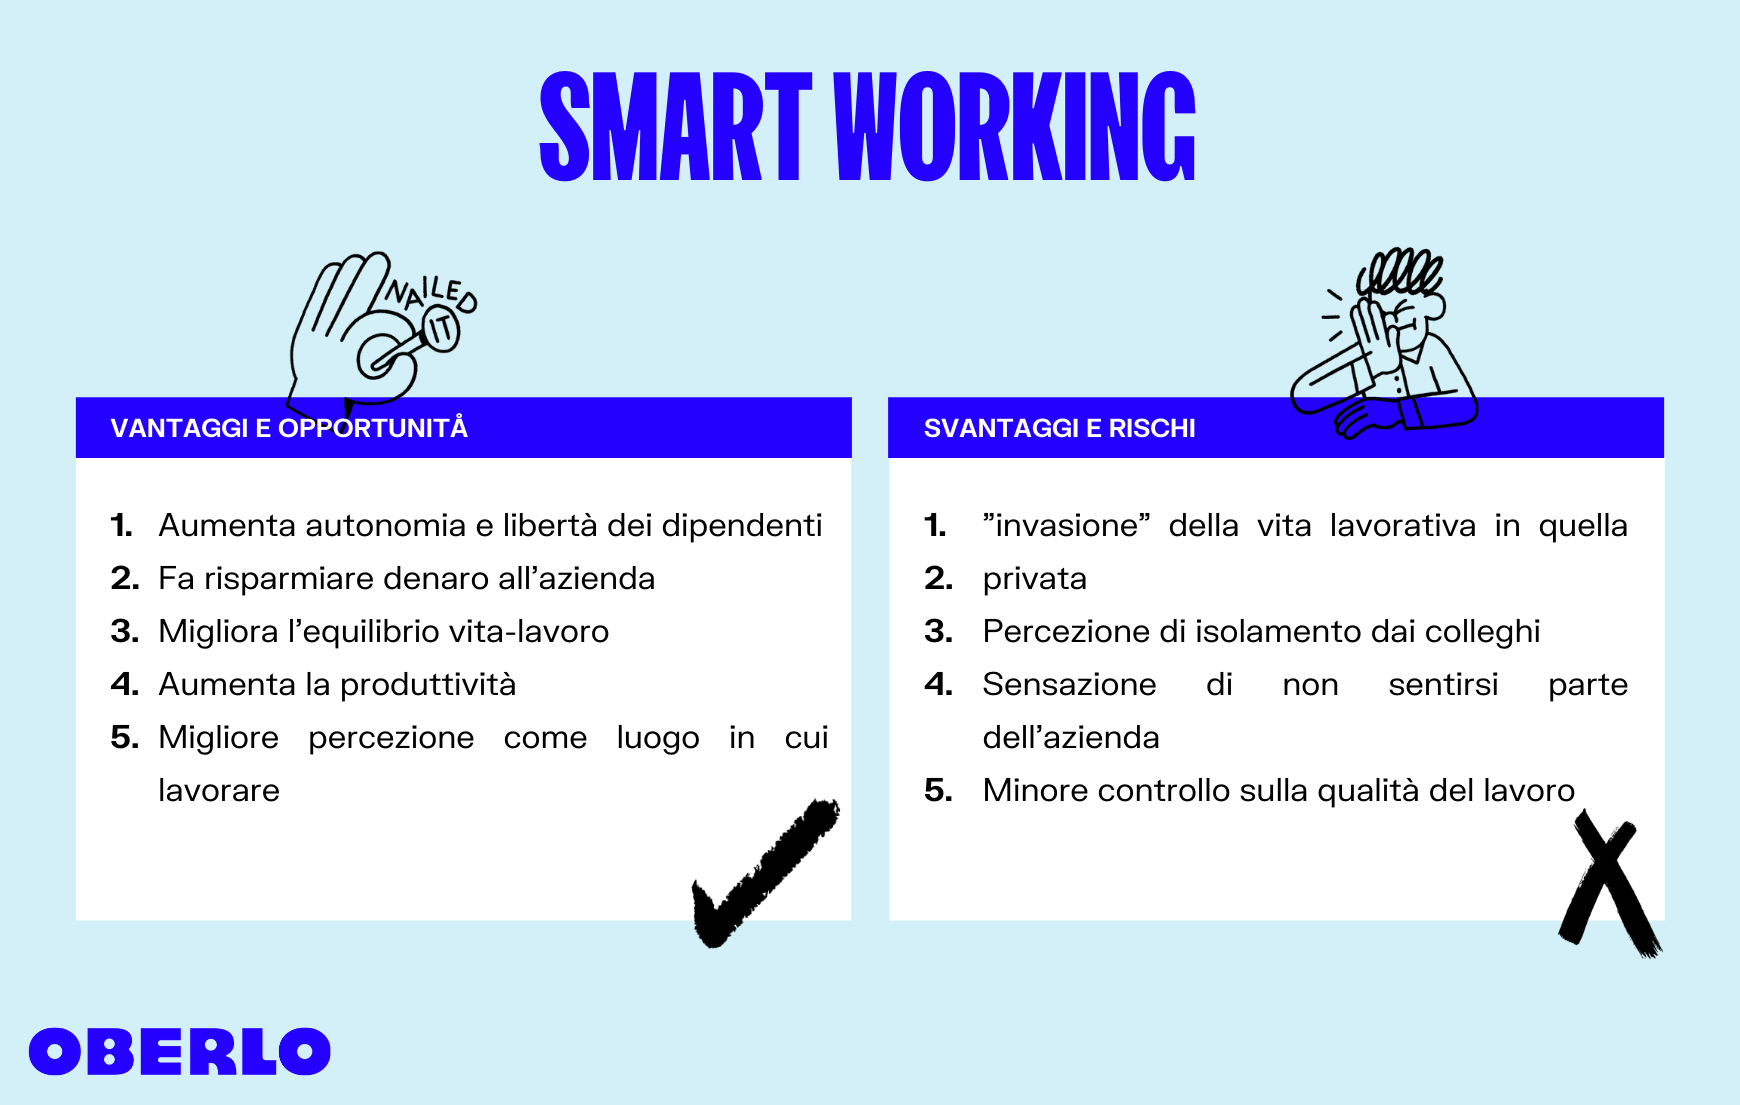 vantaggi e rischi smart working